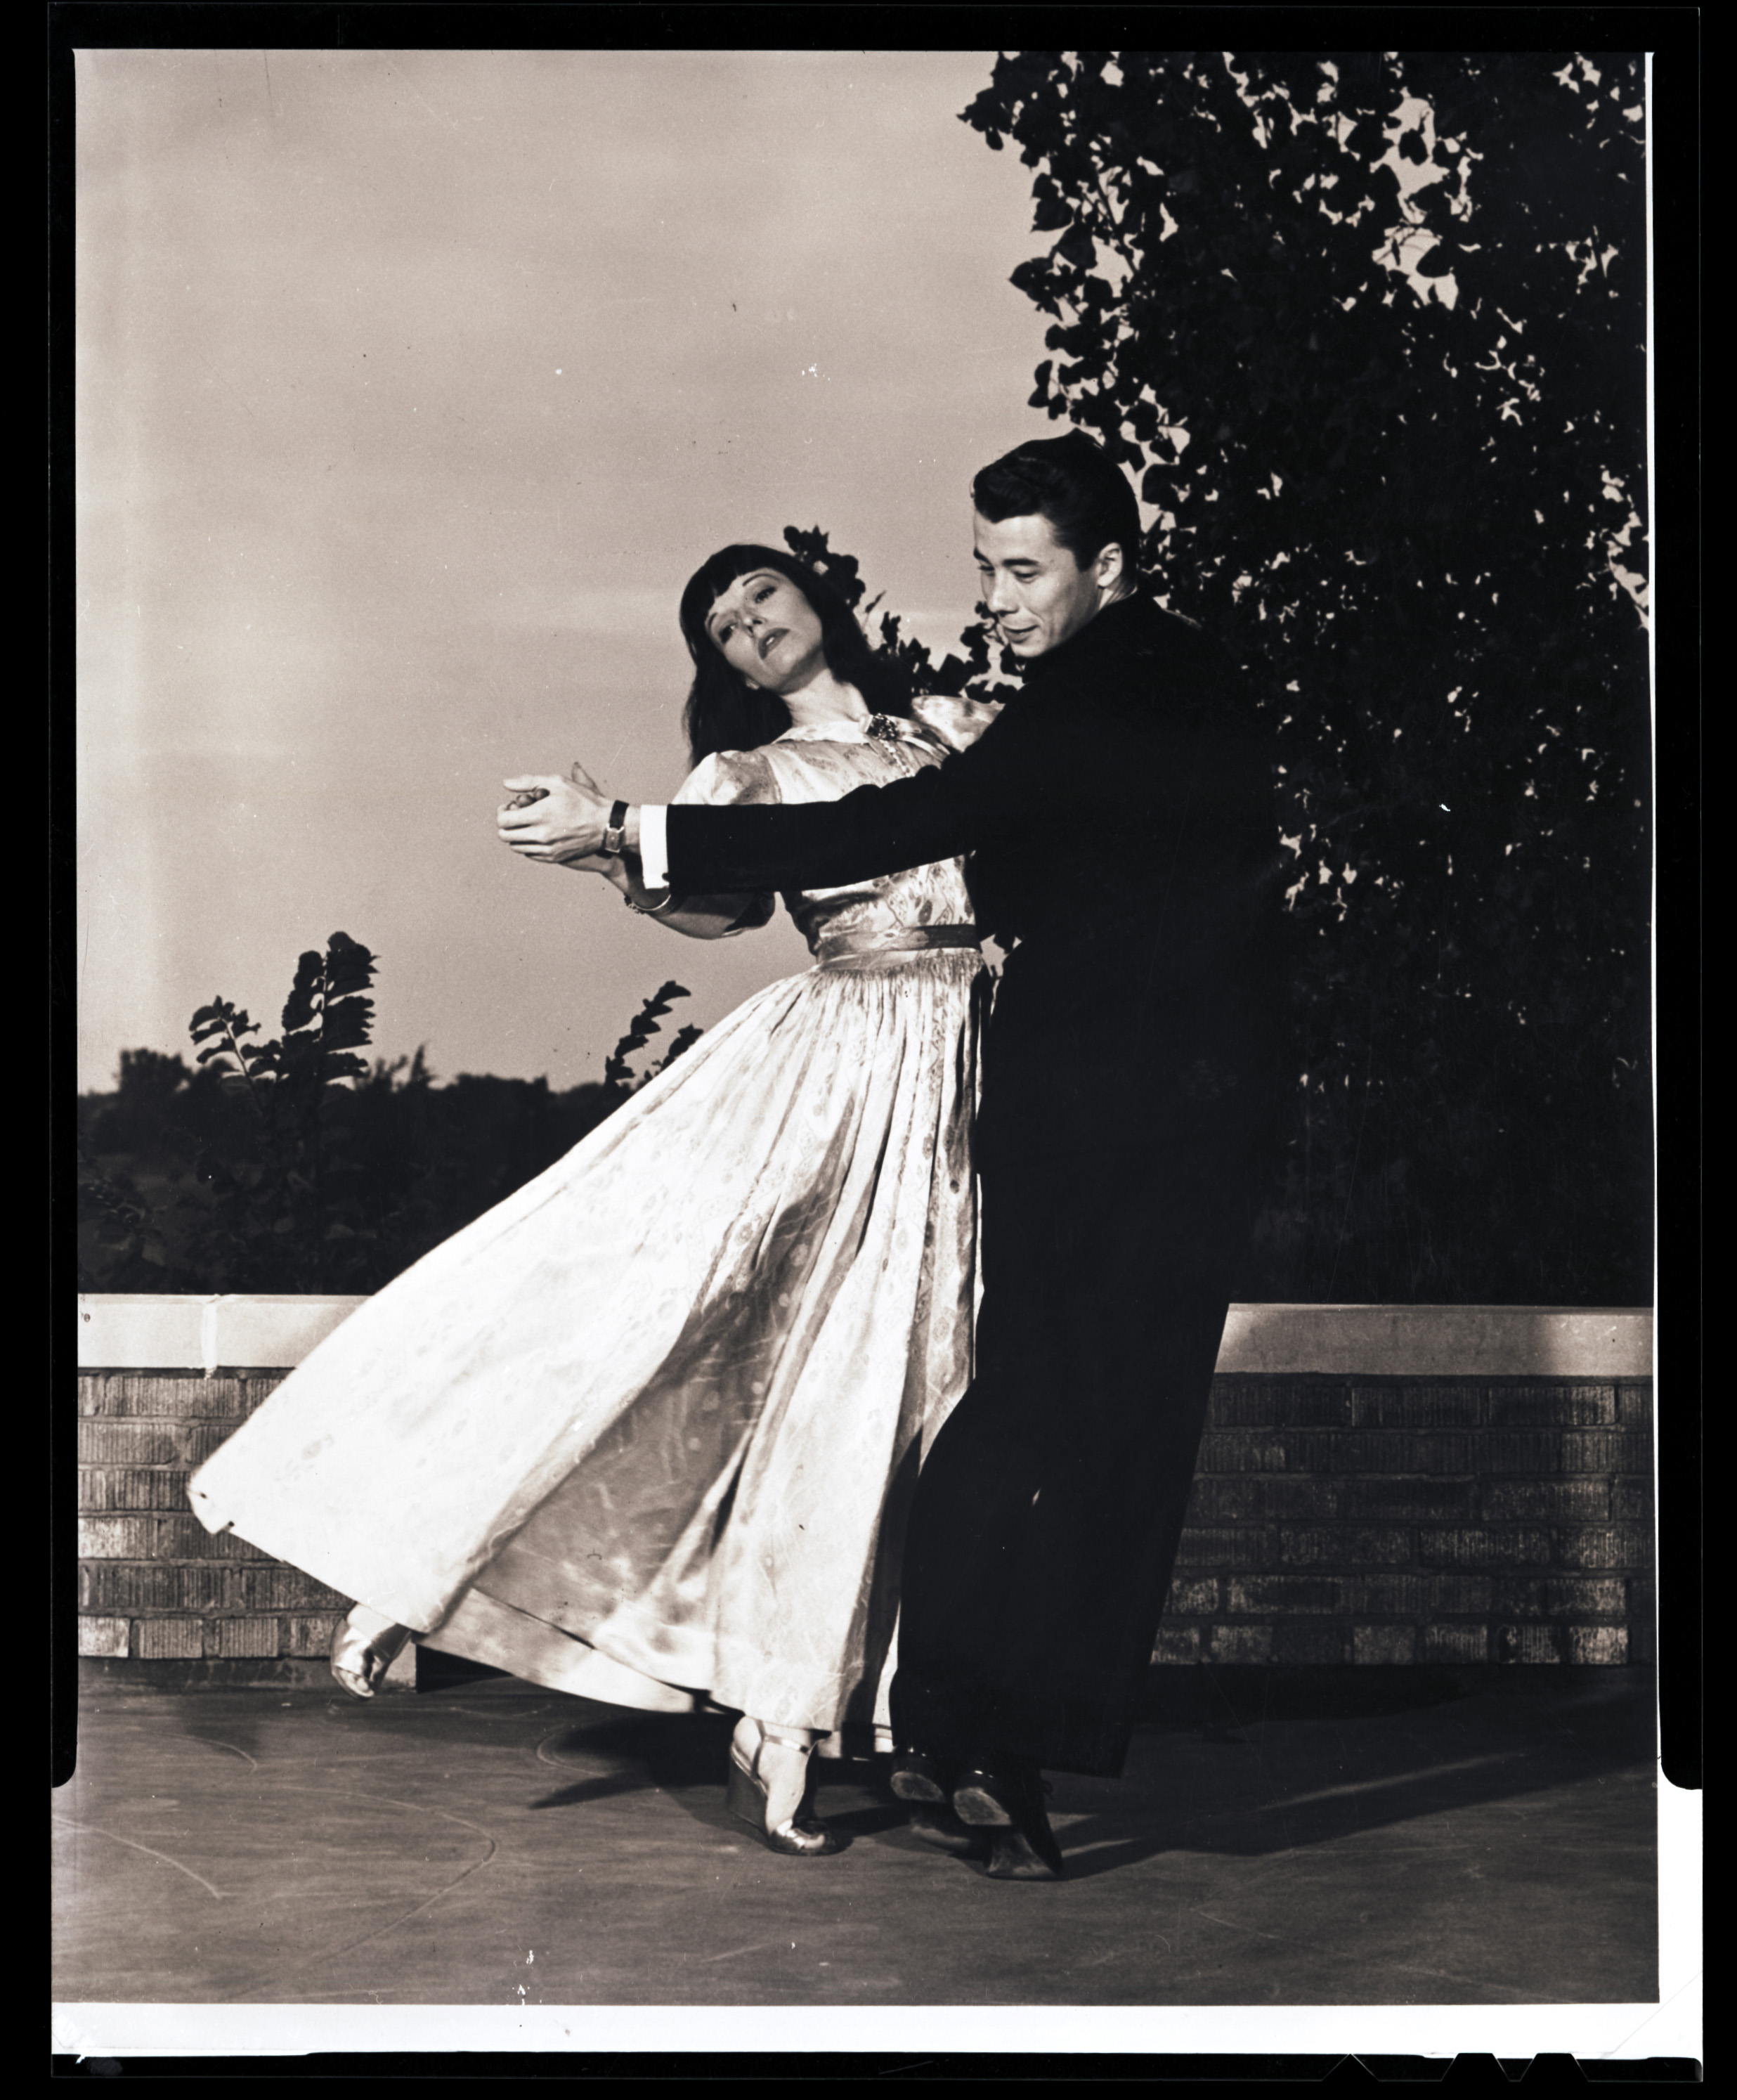 Louise Brooks and Hal McCoy dancing at the Crestview Country Club in Wichita.  Image rendered from original negative given to us by author Tom Graves, via Margaret Brooks, Louise's sister in law